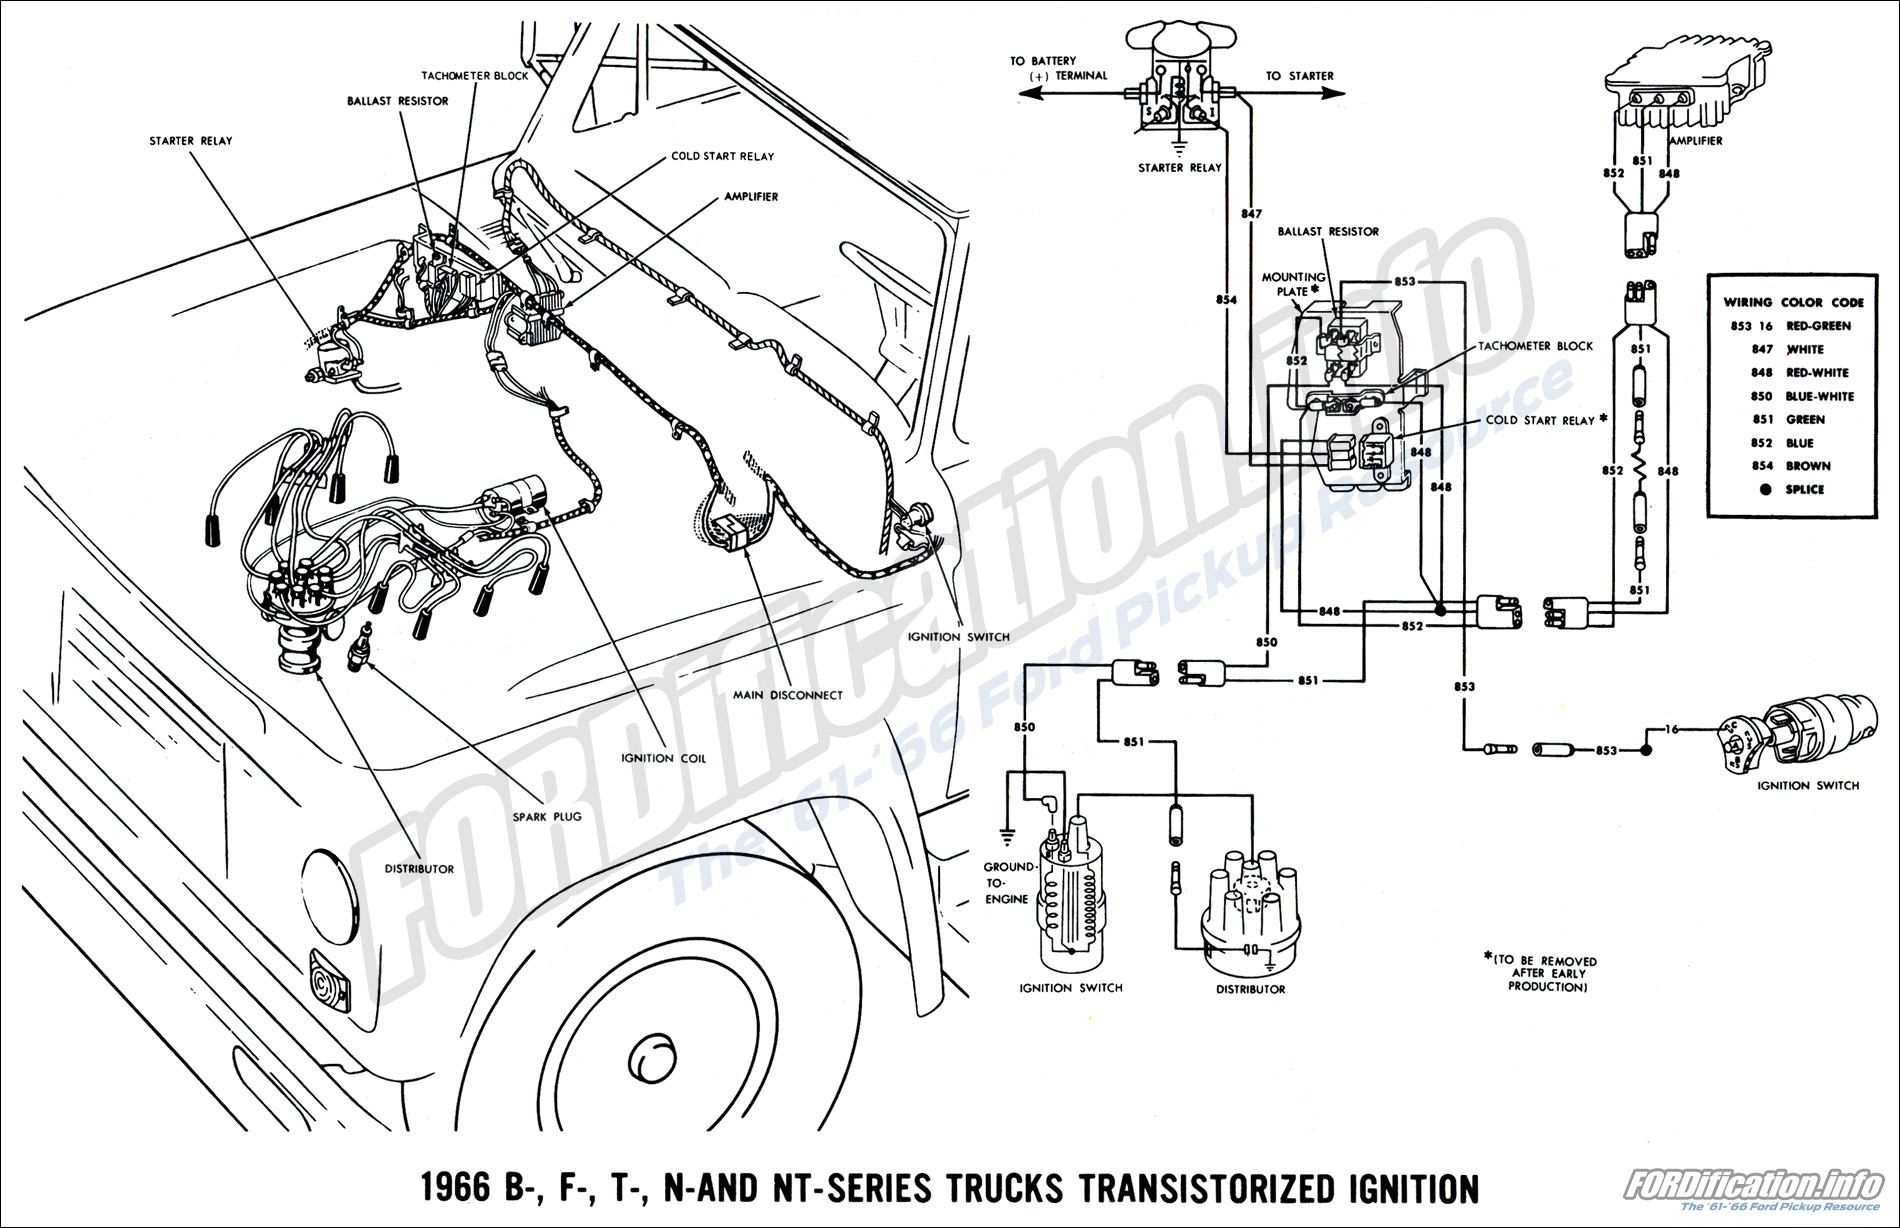 1966 ford f 250 wiring diagram 1966 ford truck wiring diagrams - fordification.info - the ... #15